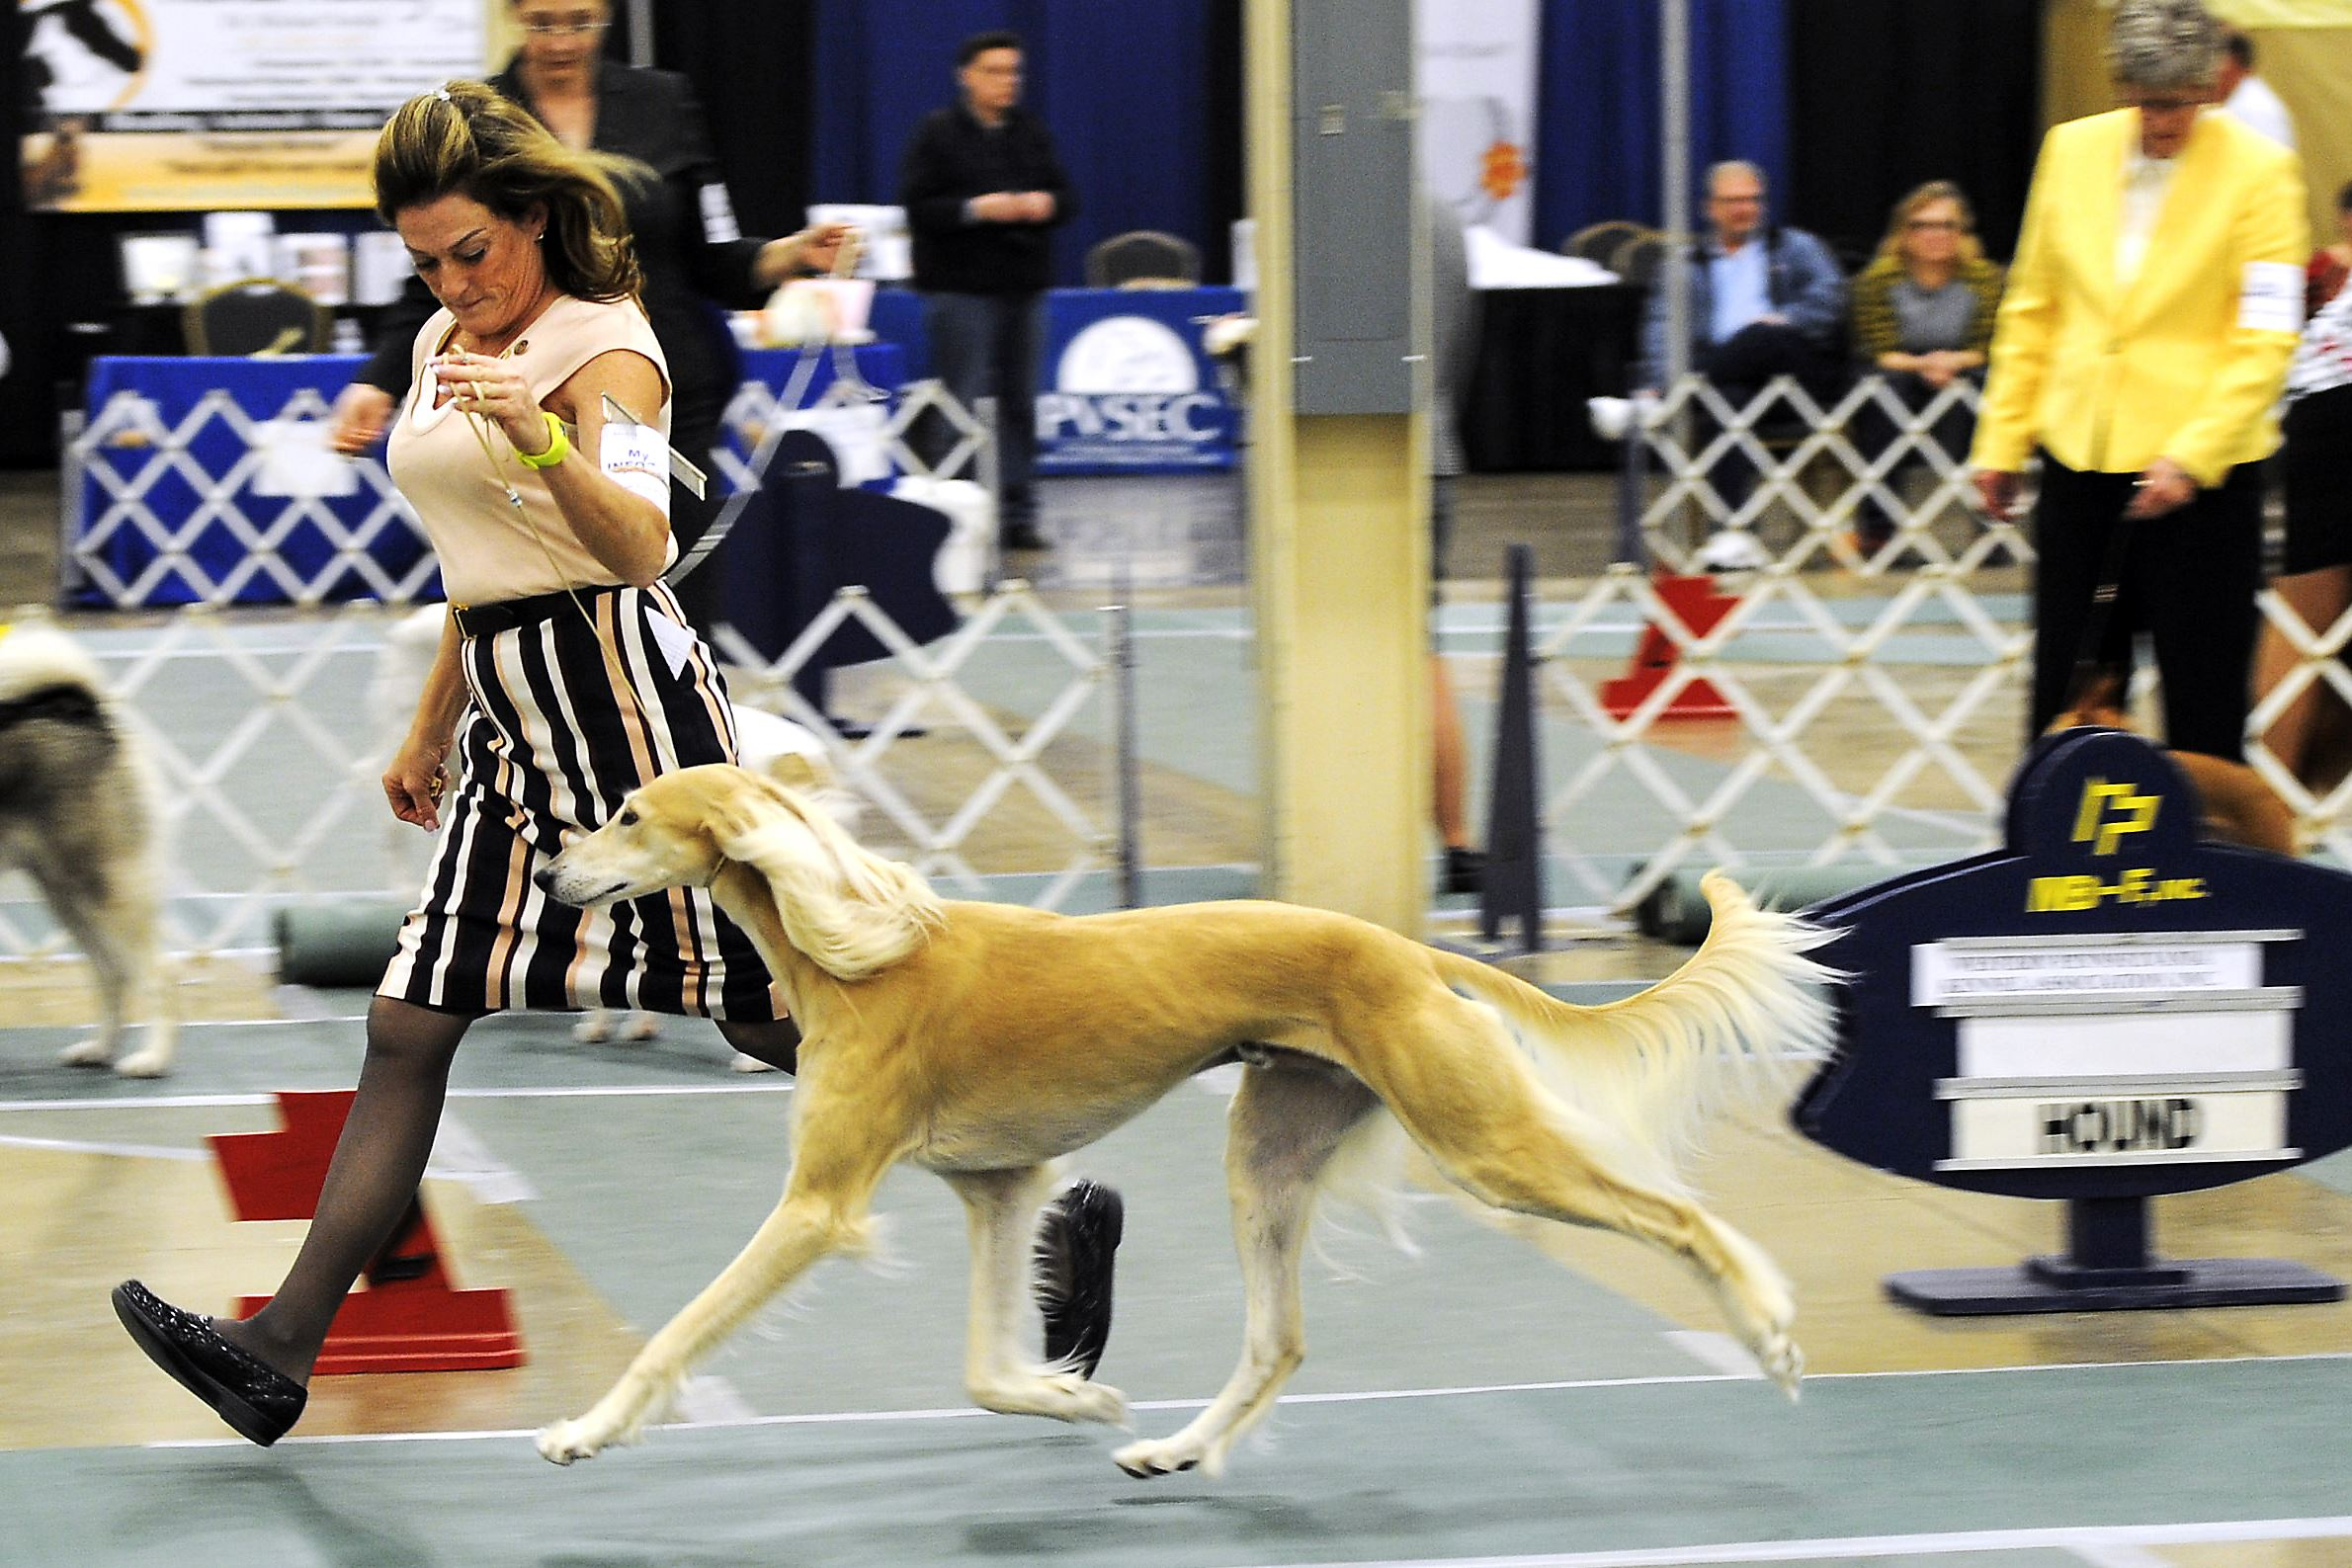 Snapple Saluki Best of Show-4 Snapple the Saluki won the Best in Show Award at the Western Pennsylvania Kennel Association dog show.